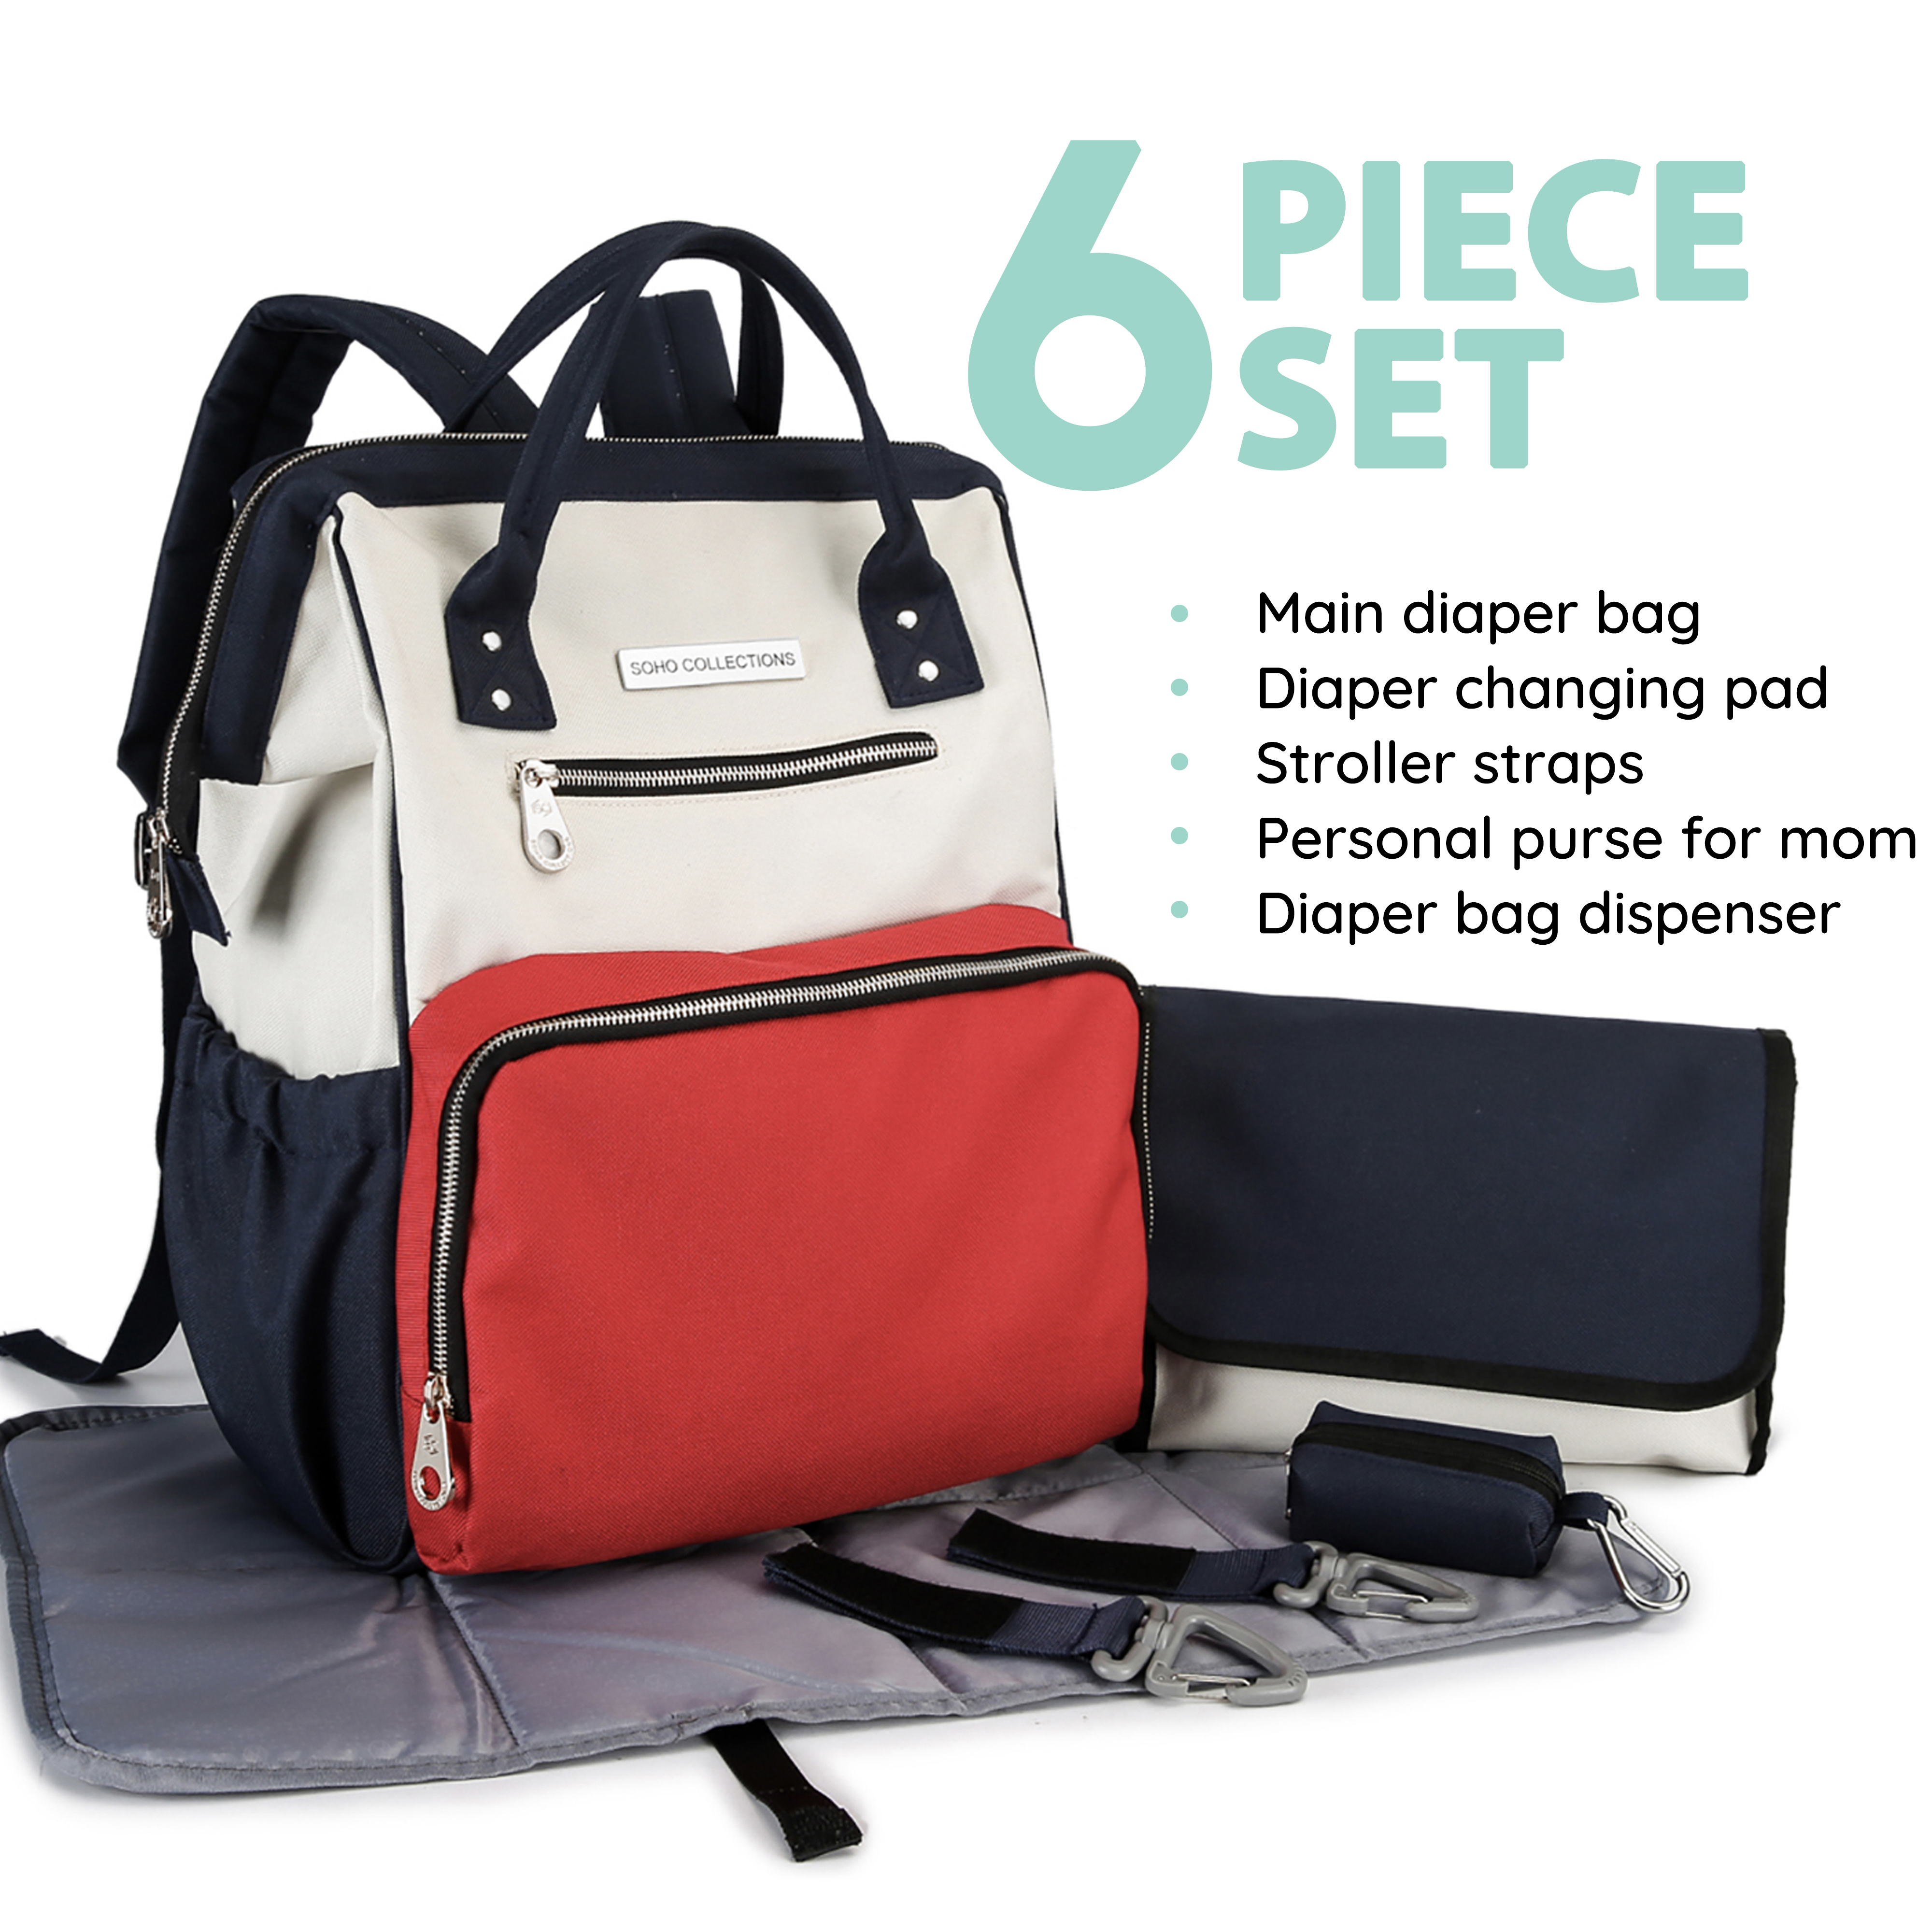 SoHo diaper bag backpack Wide Opening 6 pieces nappy tote bag for baby mom dad stylish insulated unisex multifuncation large capacity waterproof durable includes changing pad stroller straps American